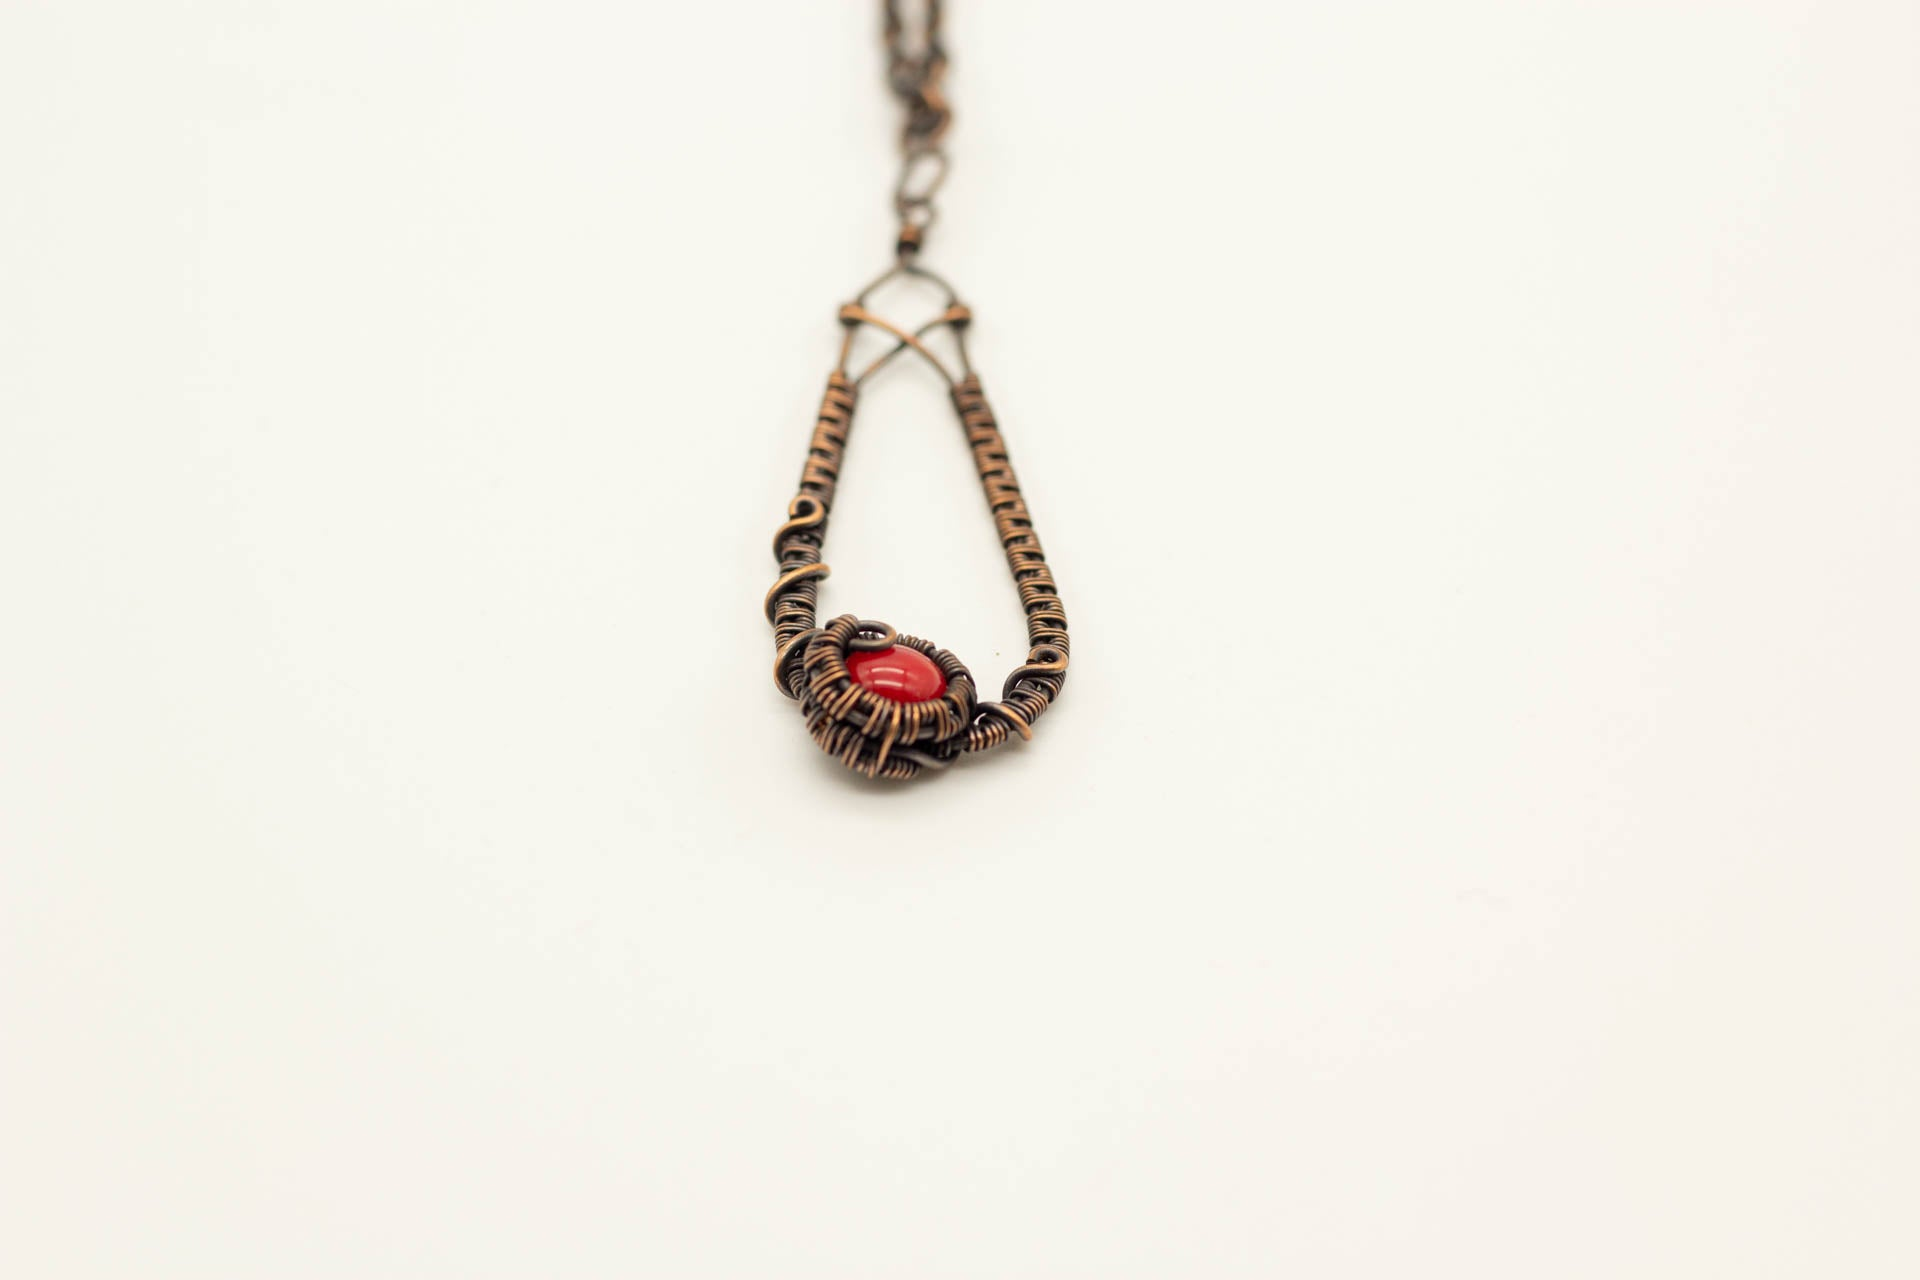 copper-wire-wrapped-teardrop-pendant-red-fused-glass-nymph-in-the-woods